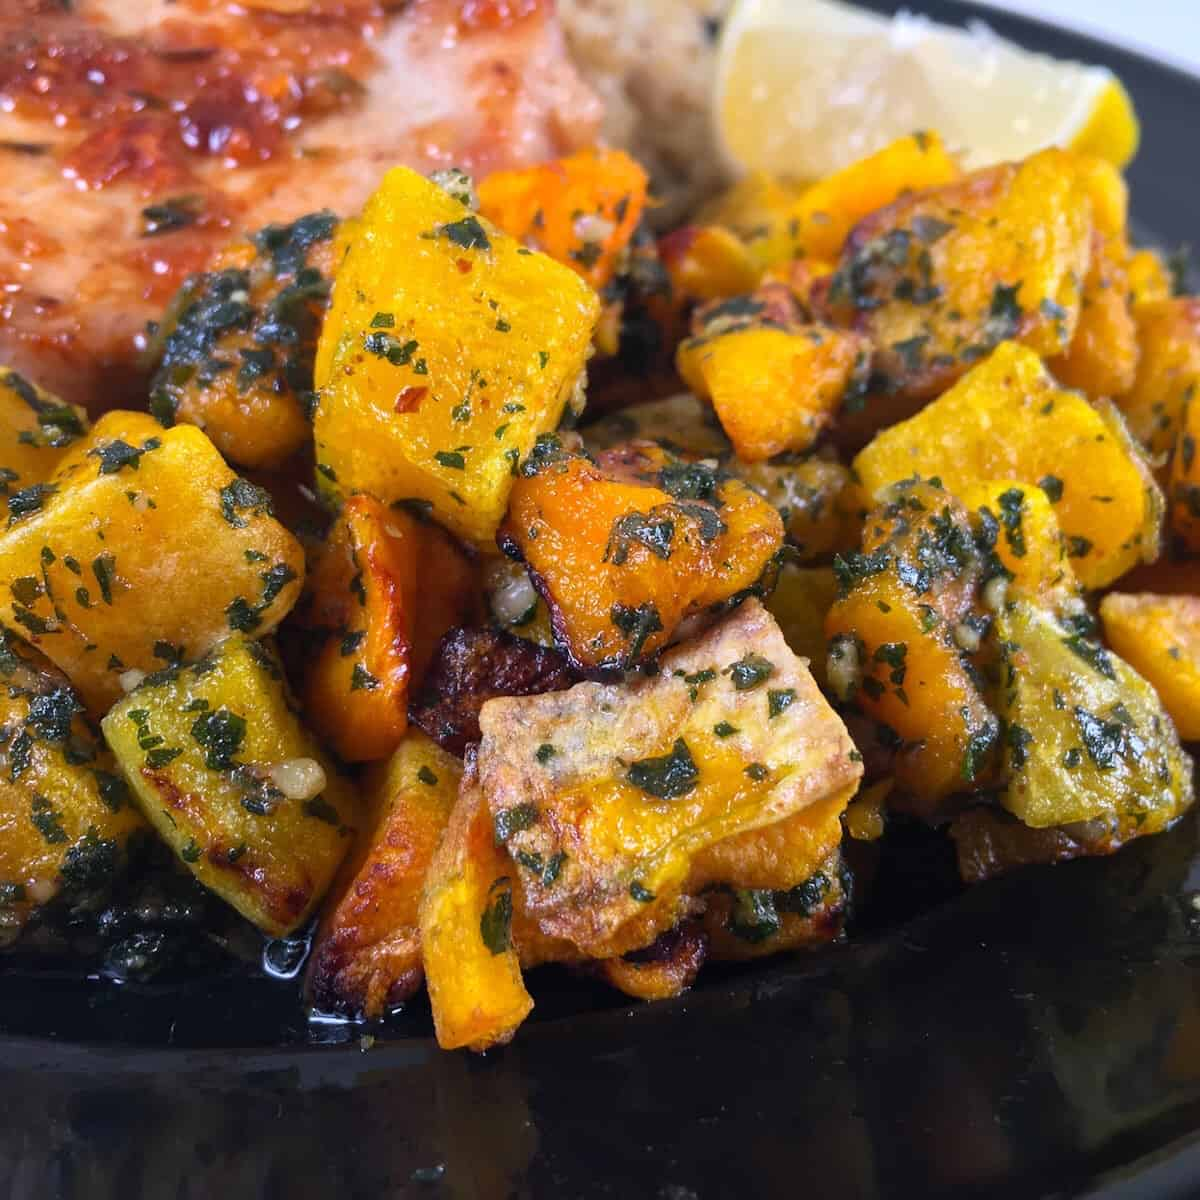 frozen squash cooked in the air fryer